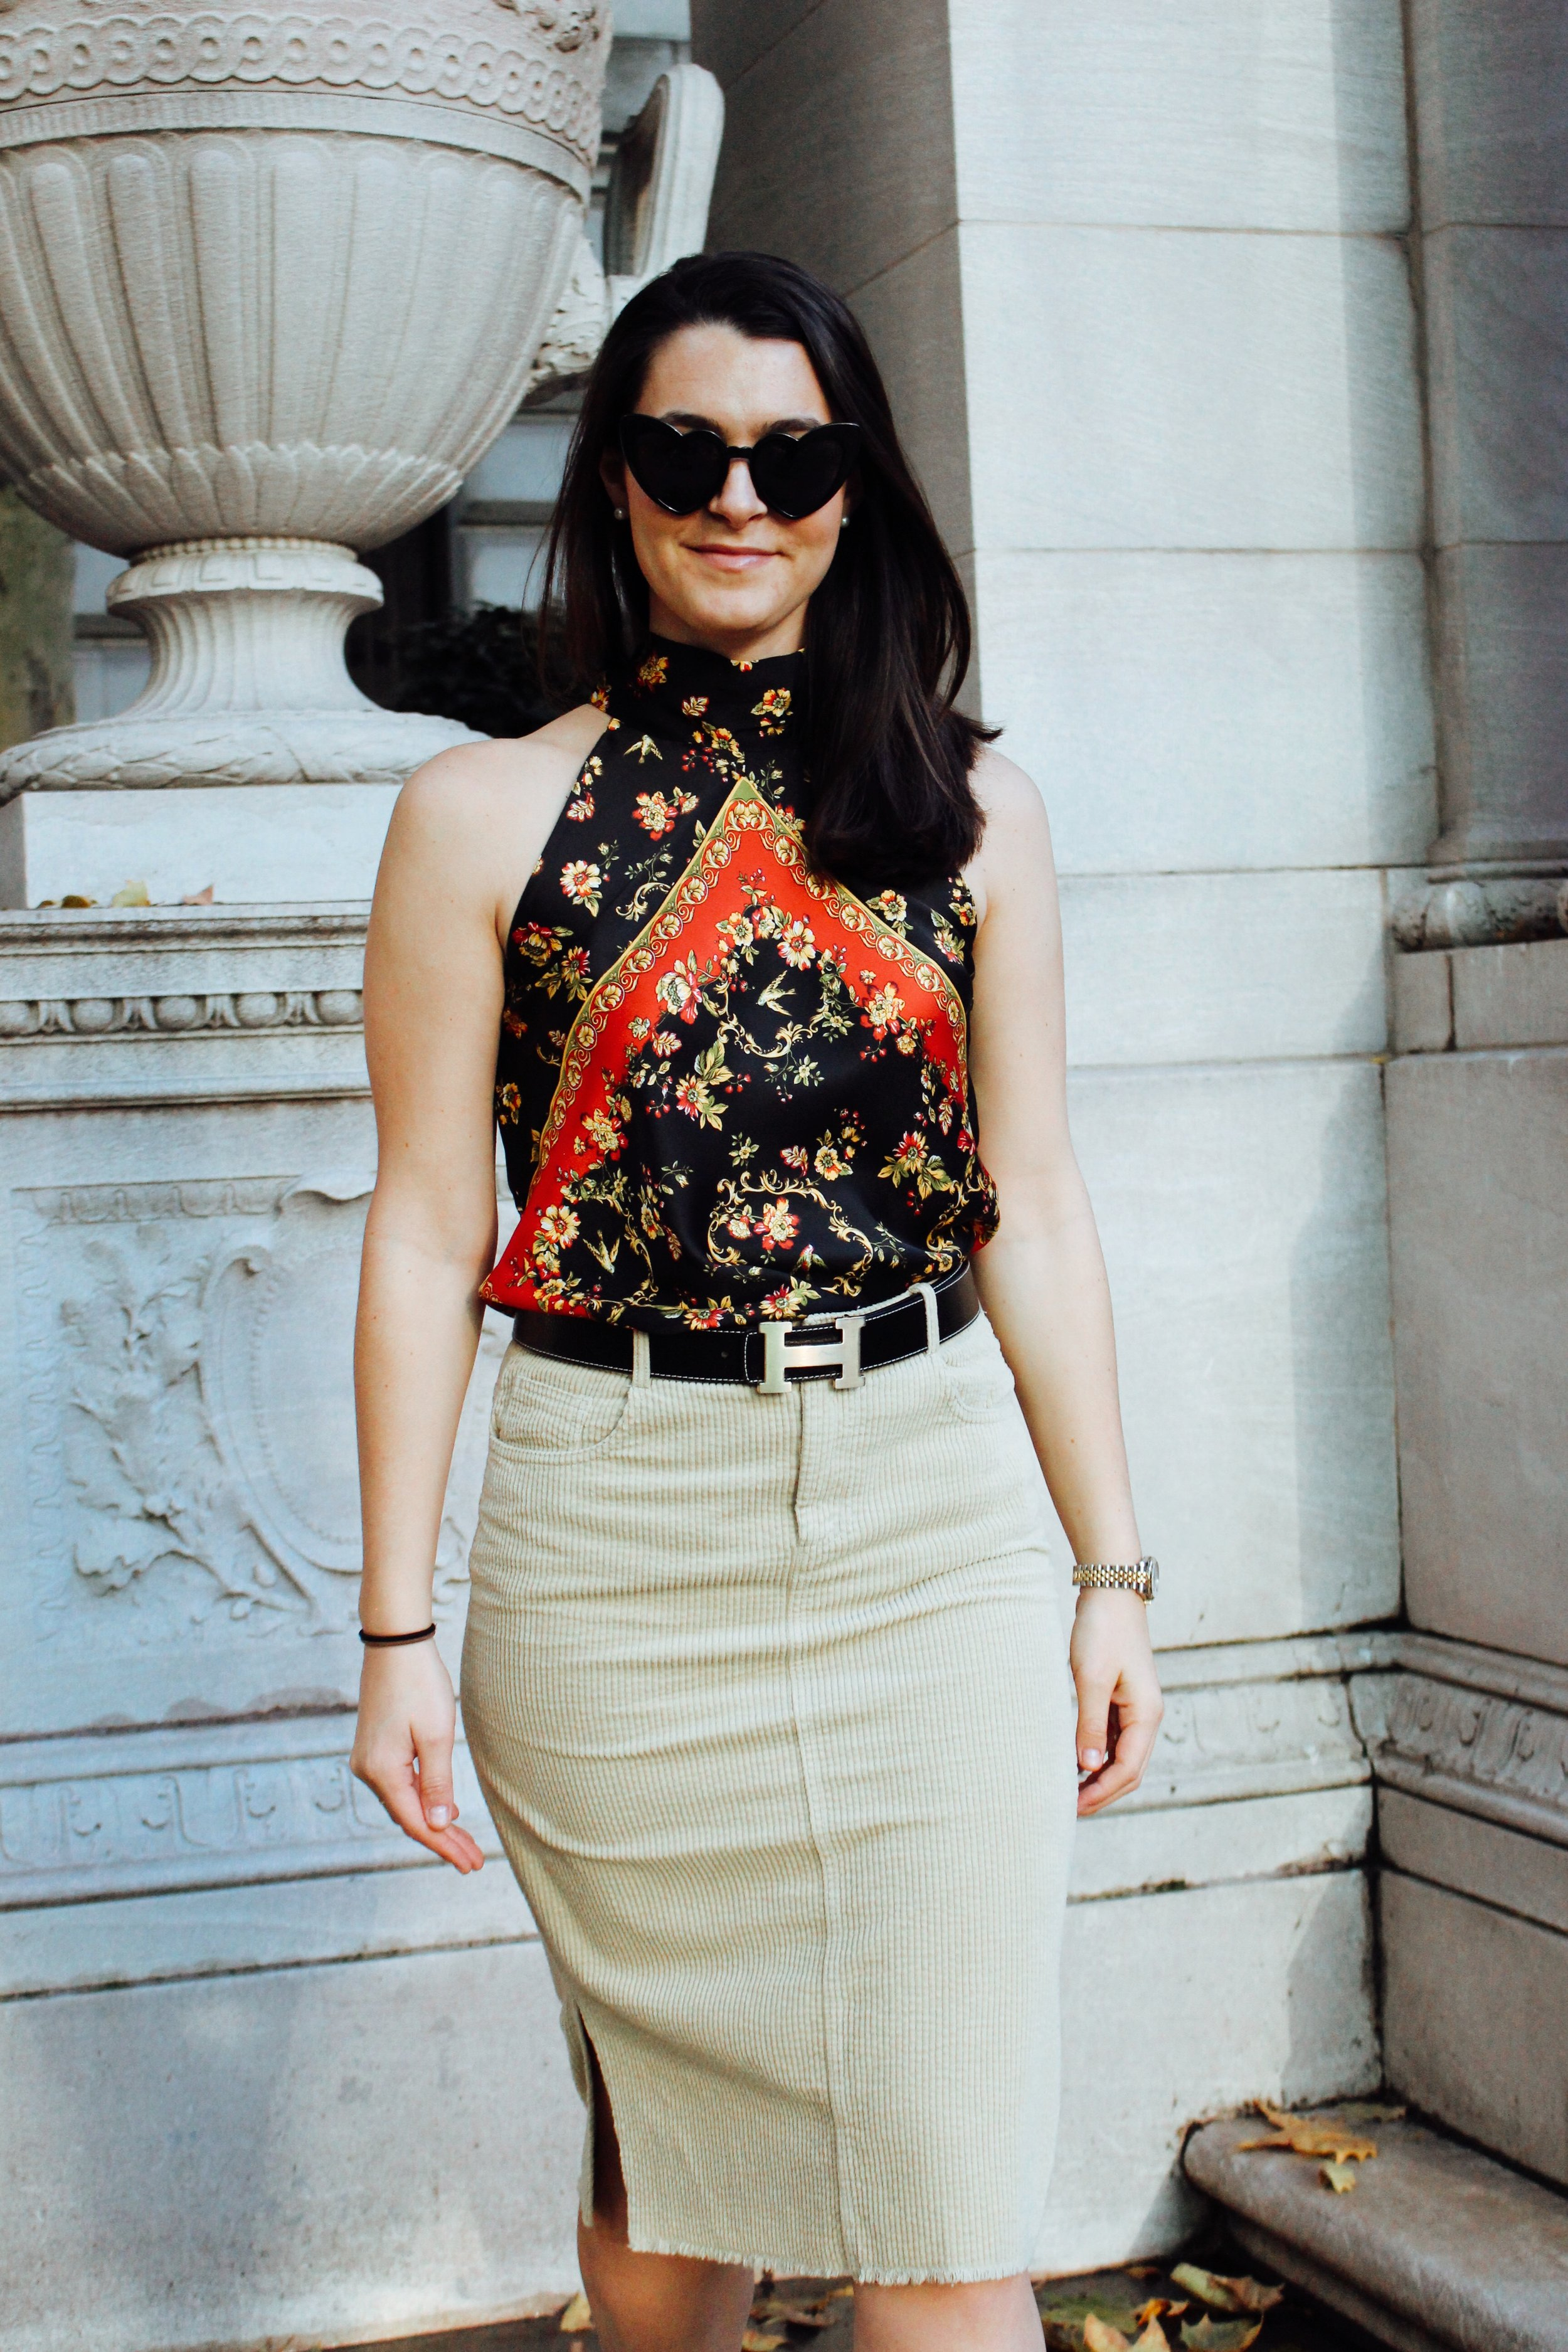 All clothes by Zara // Click for SIMILARS:  Vince Camuto cordury skirt  ($41),  Topshop mini corduroy skirt  ($65),  Hermés black belt ,  Heart sunnies  ($10),  Gucci halter top ON SALE  ($260)